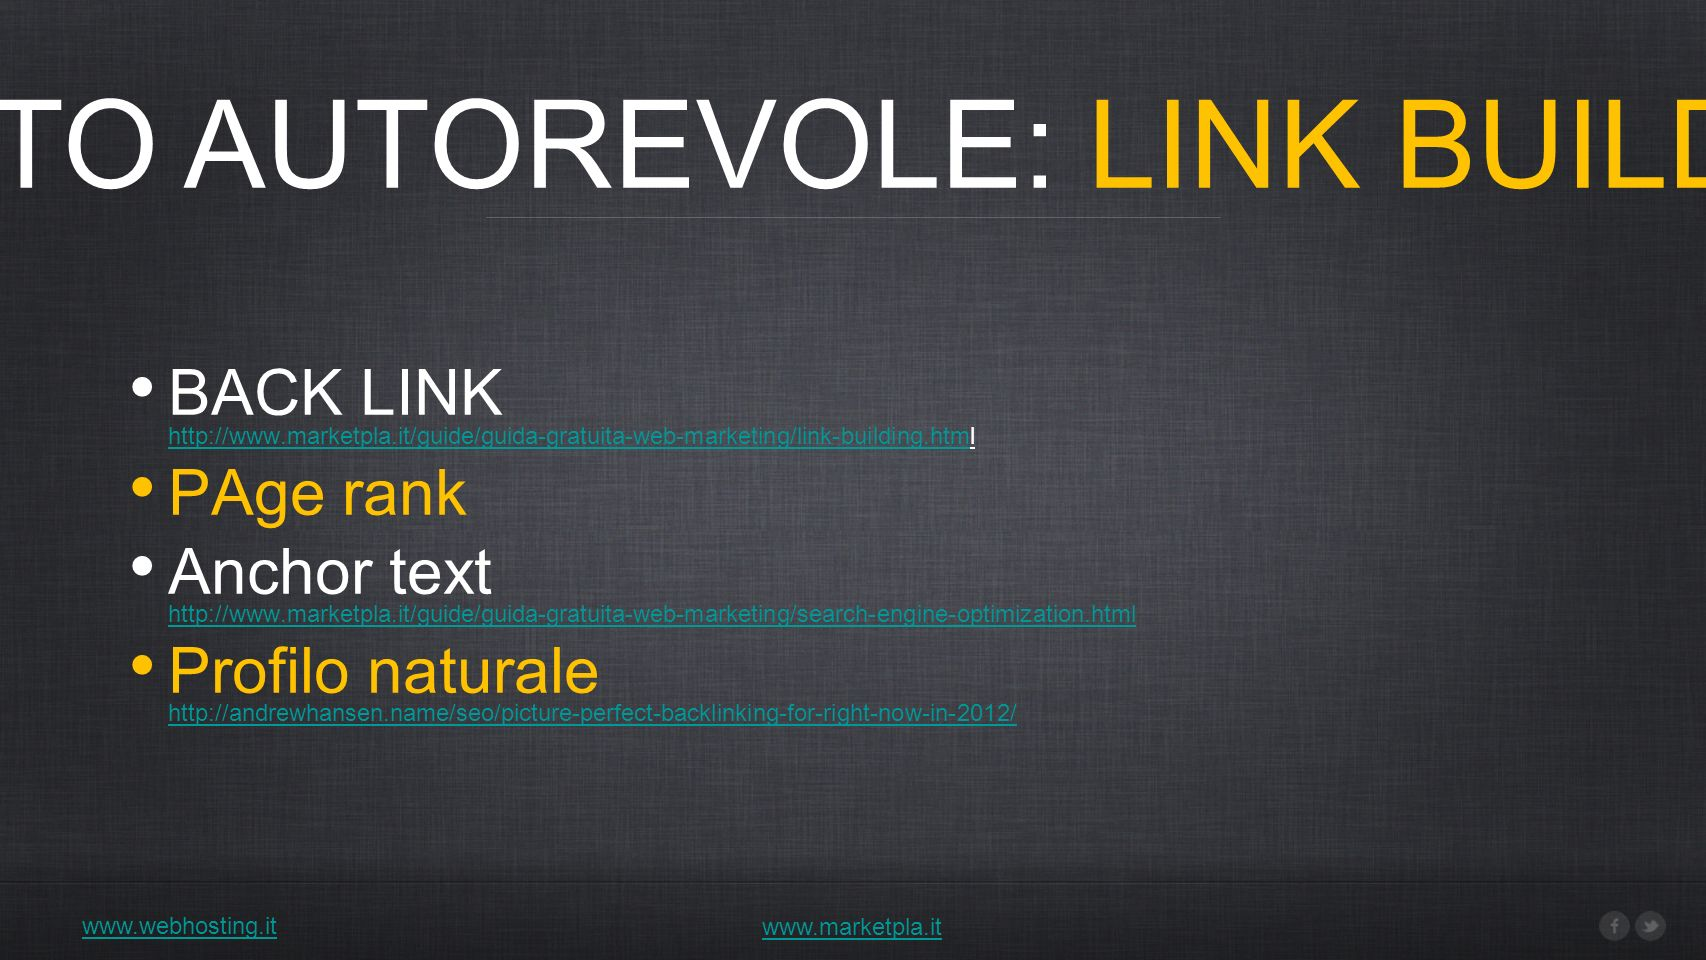 2) SITO AUTOREVOLE: LINK BUILDING www.webhosting.it www.marketpla.it BACK LINK http://www.marketpla.it/guide/guida-gratuita-web-marketing/link-building.html http://www.marketpla.it/guide/guida-gratuita-web-marketing/link-building.htm PAge rank Anchor text http://www.marketpla.it/guide/guida-gratuita-web-marketing/search-engine-optimization.html http://www.marketpla.it/guide/guida-gratuita-web-marketing/search-engine-optimization.html Profilo naturale http://andrewhansen.name/seo/picture-perfect-backlinking-for-right-now-in-2012/ http://andrewhansen.name/seo/picture-perfect-backlinking-for-right-now-in-2012/